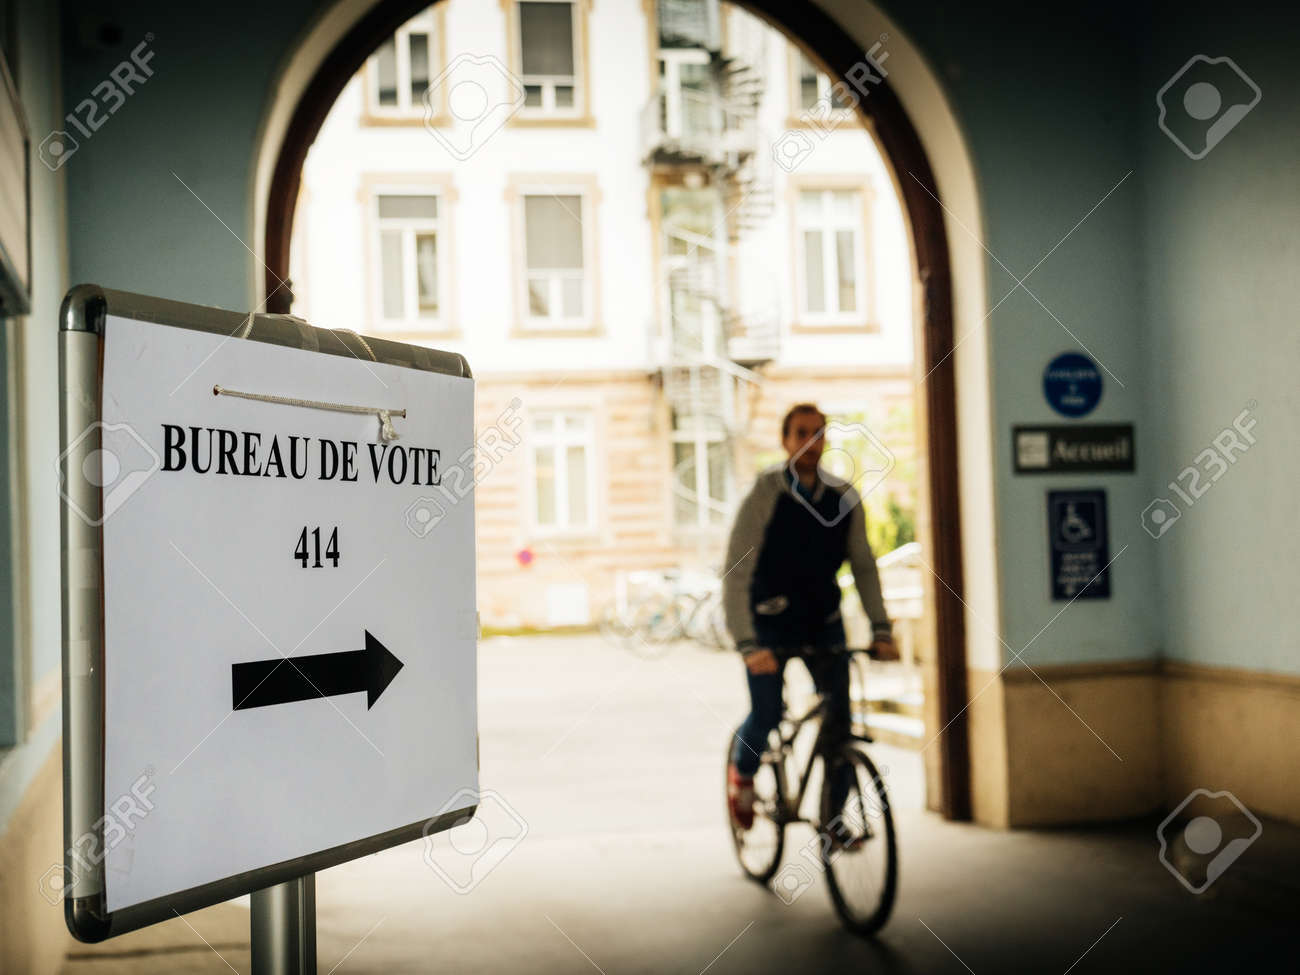 Strasbourg france may 7 2017: bureau de vote sign in french